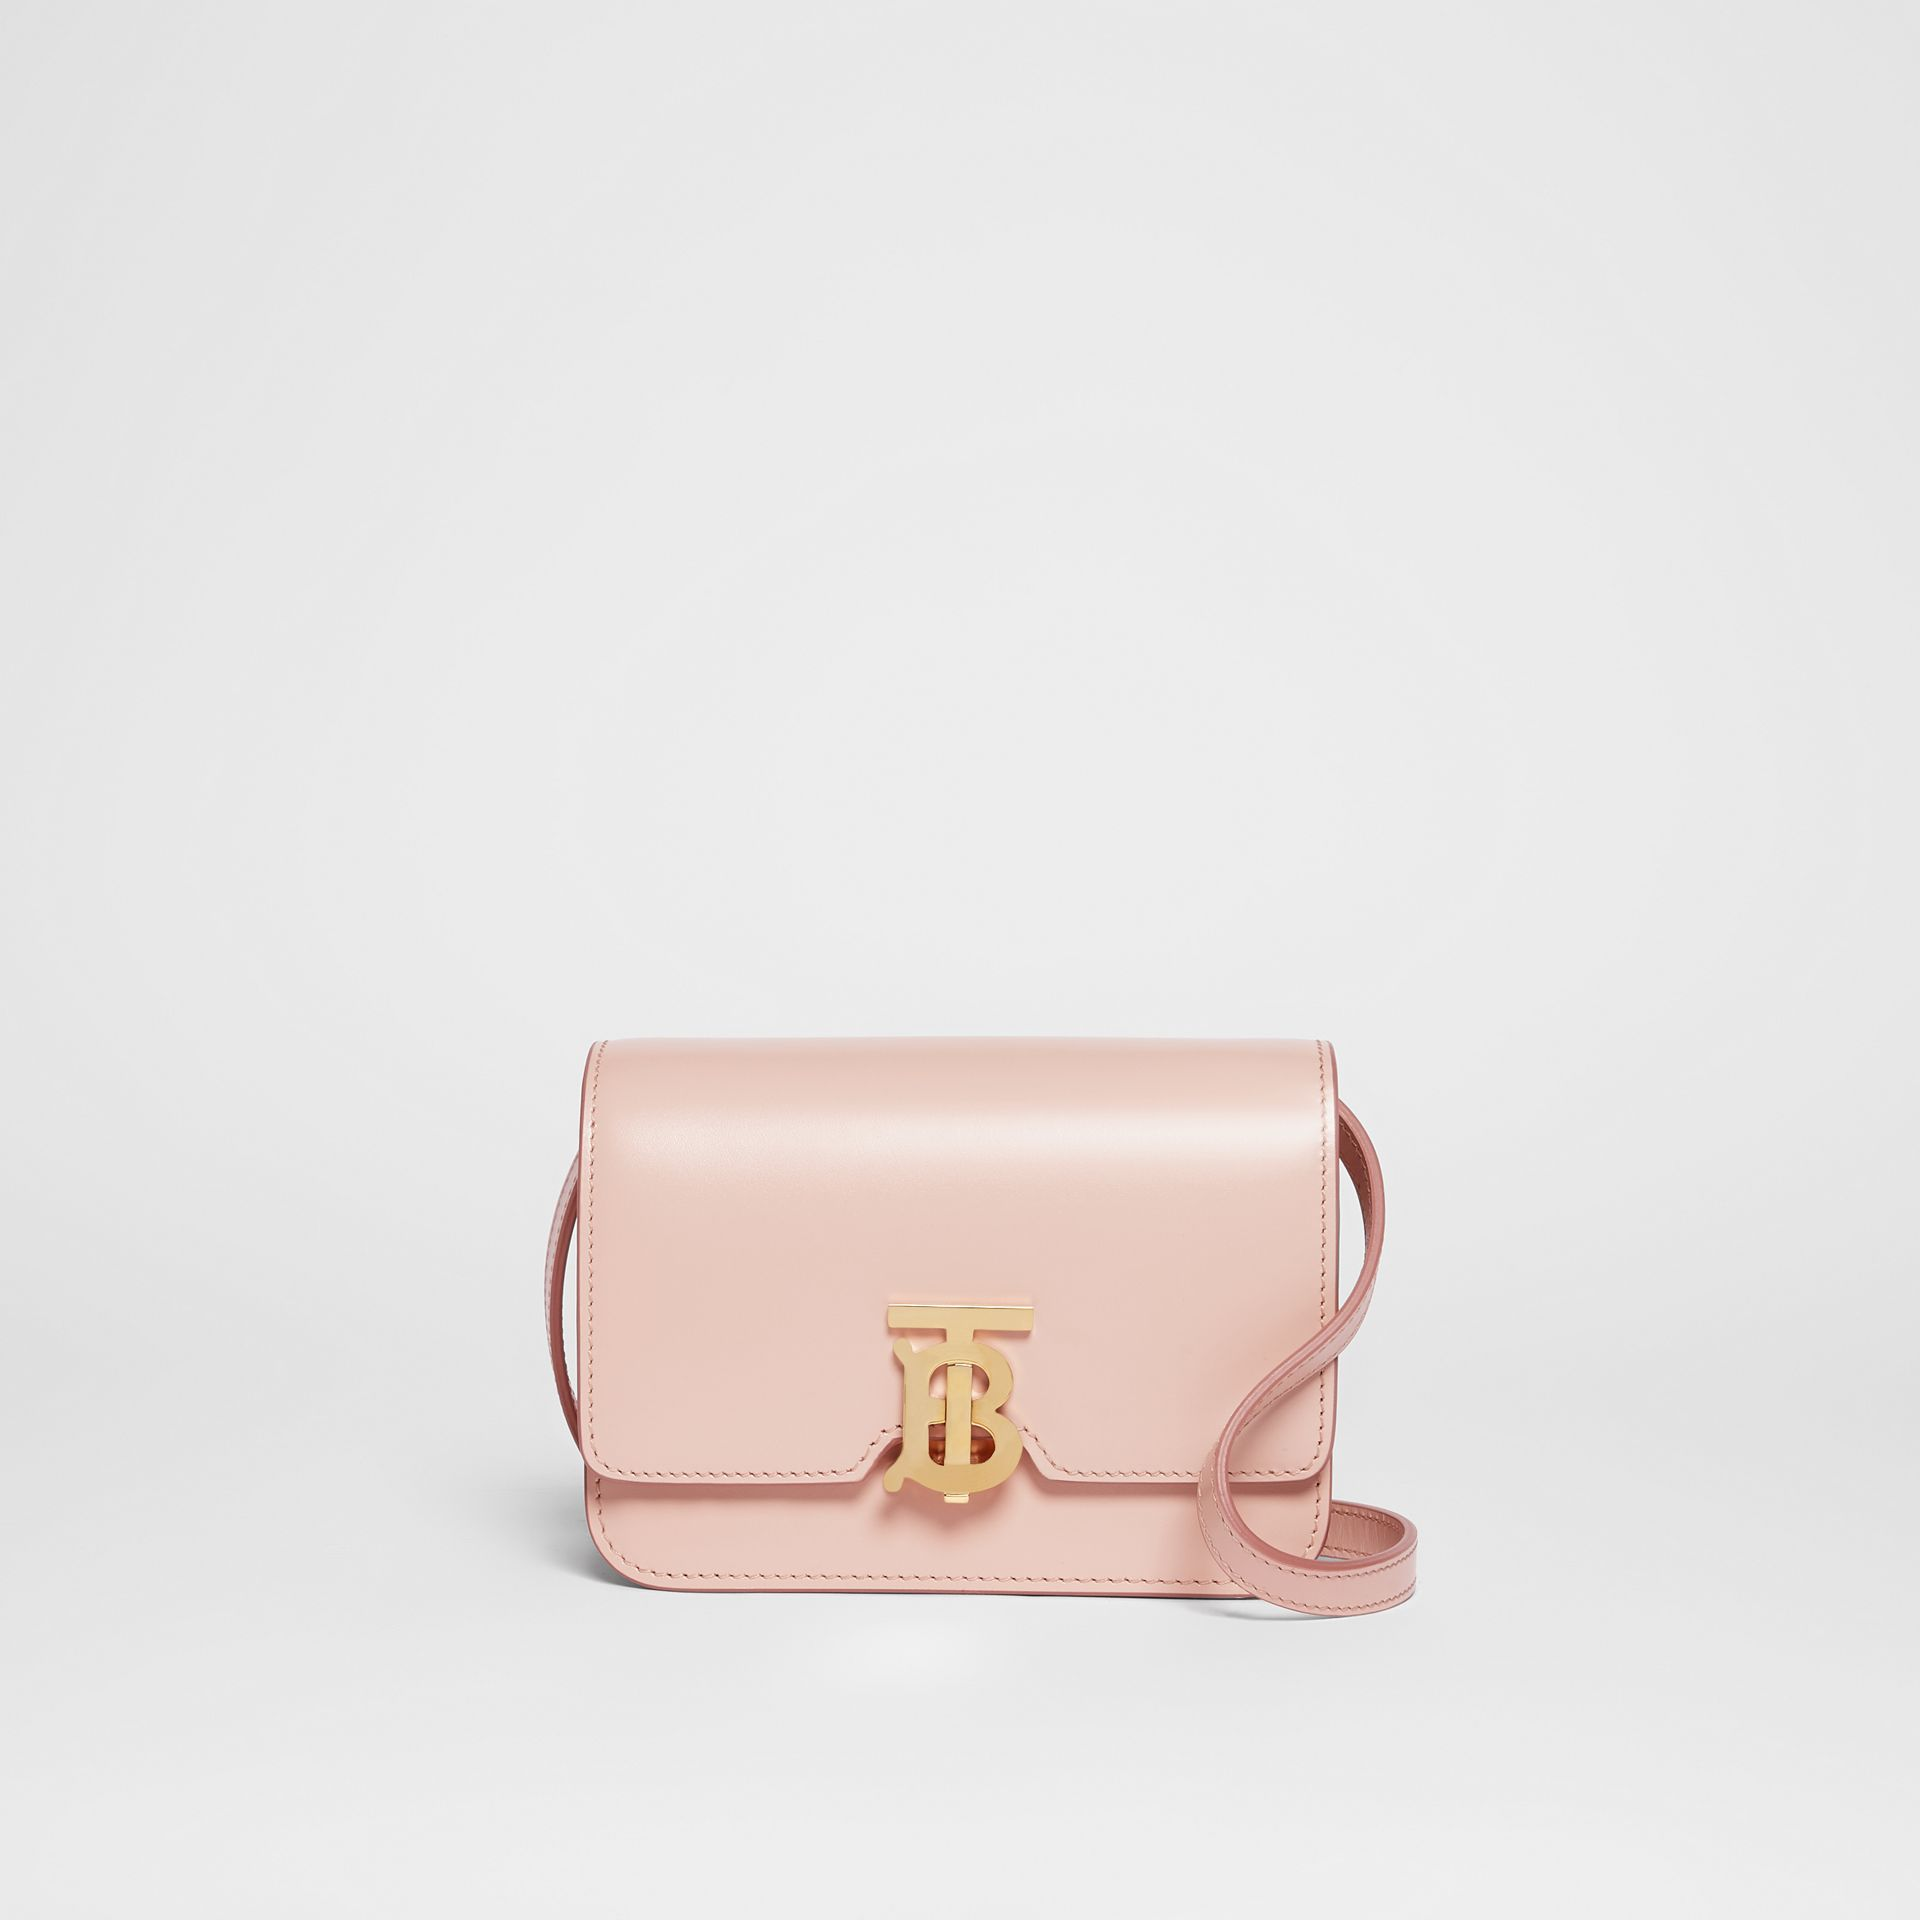 Mini Leather TB Bag in Rose Beige - Women | Burberry - gallery image 0